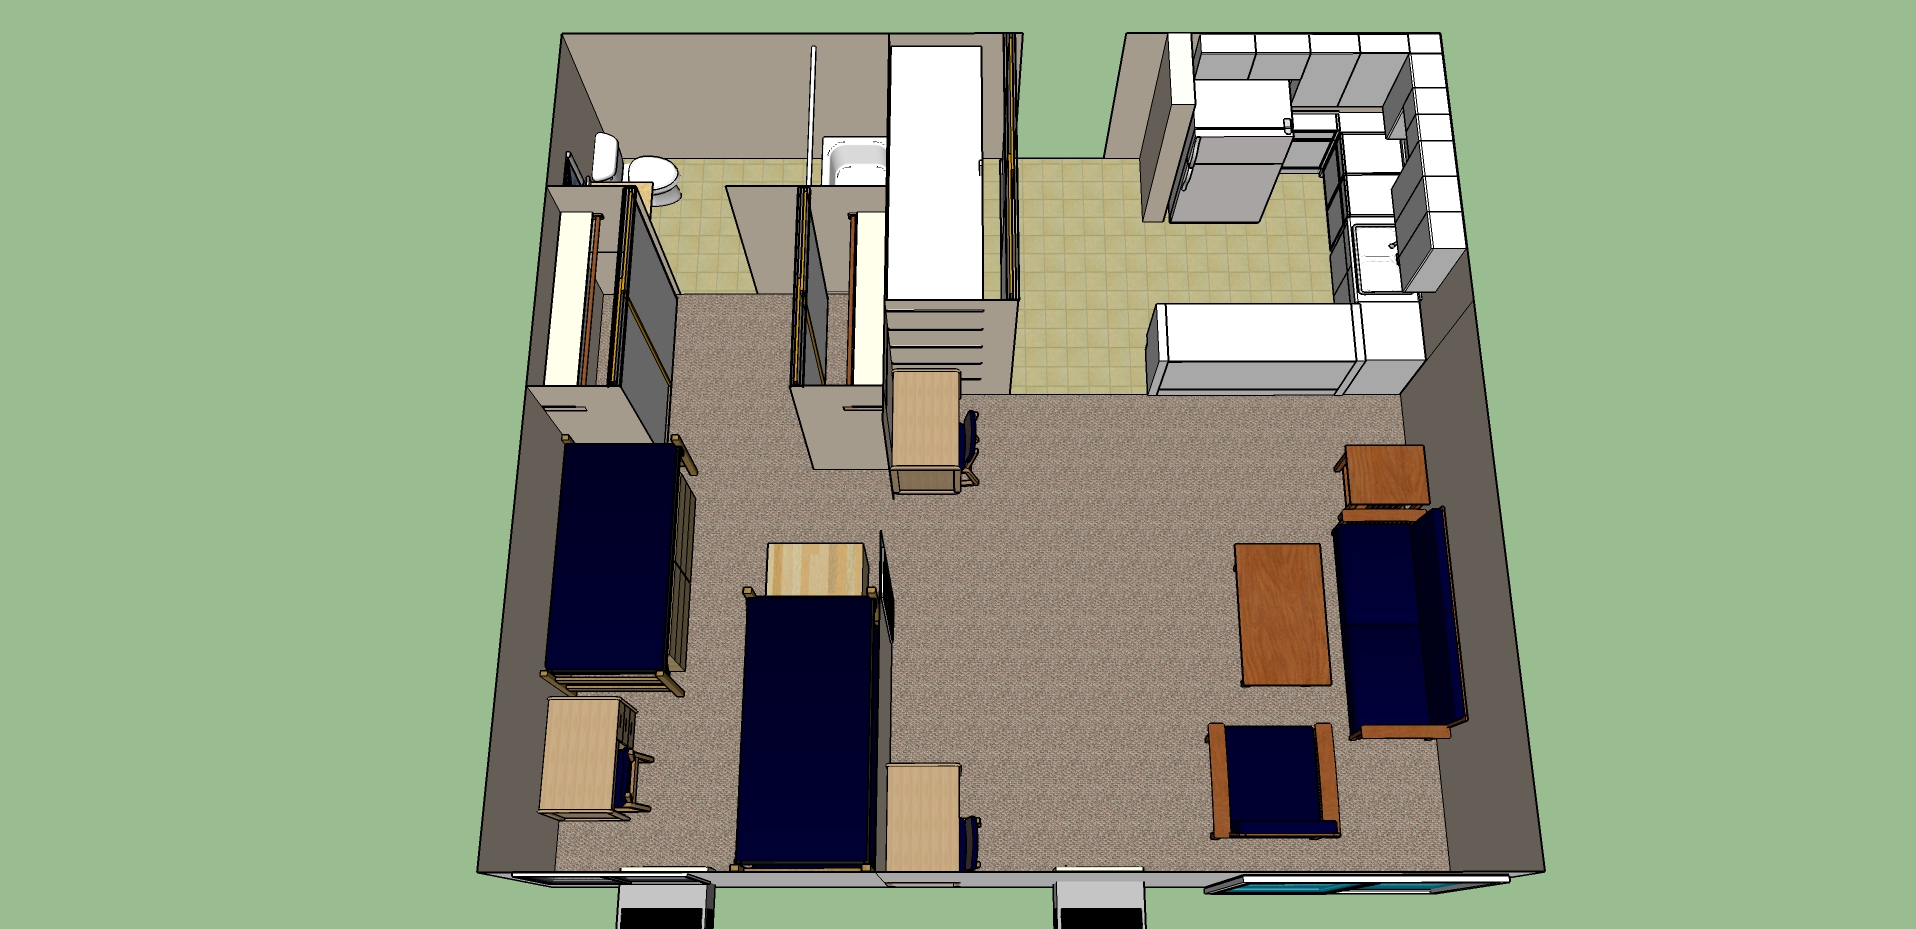 california baptist university residence life tower hall